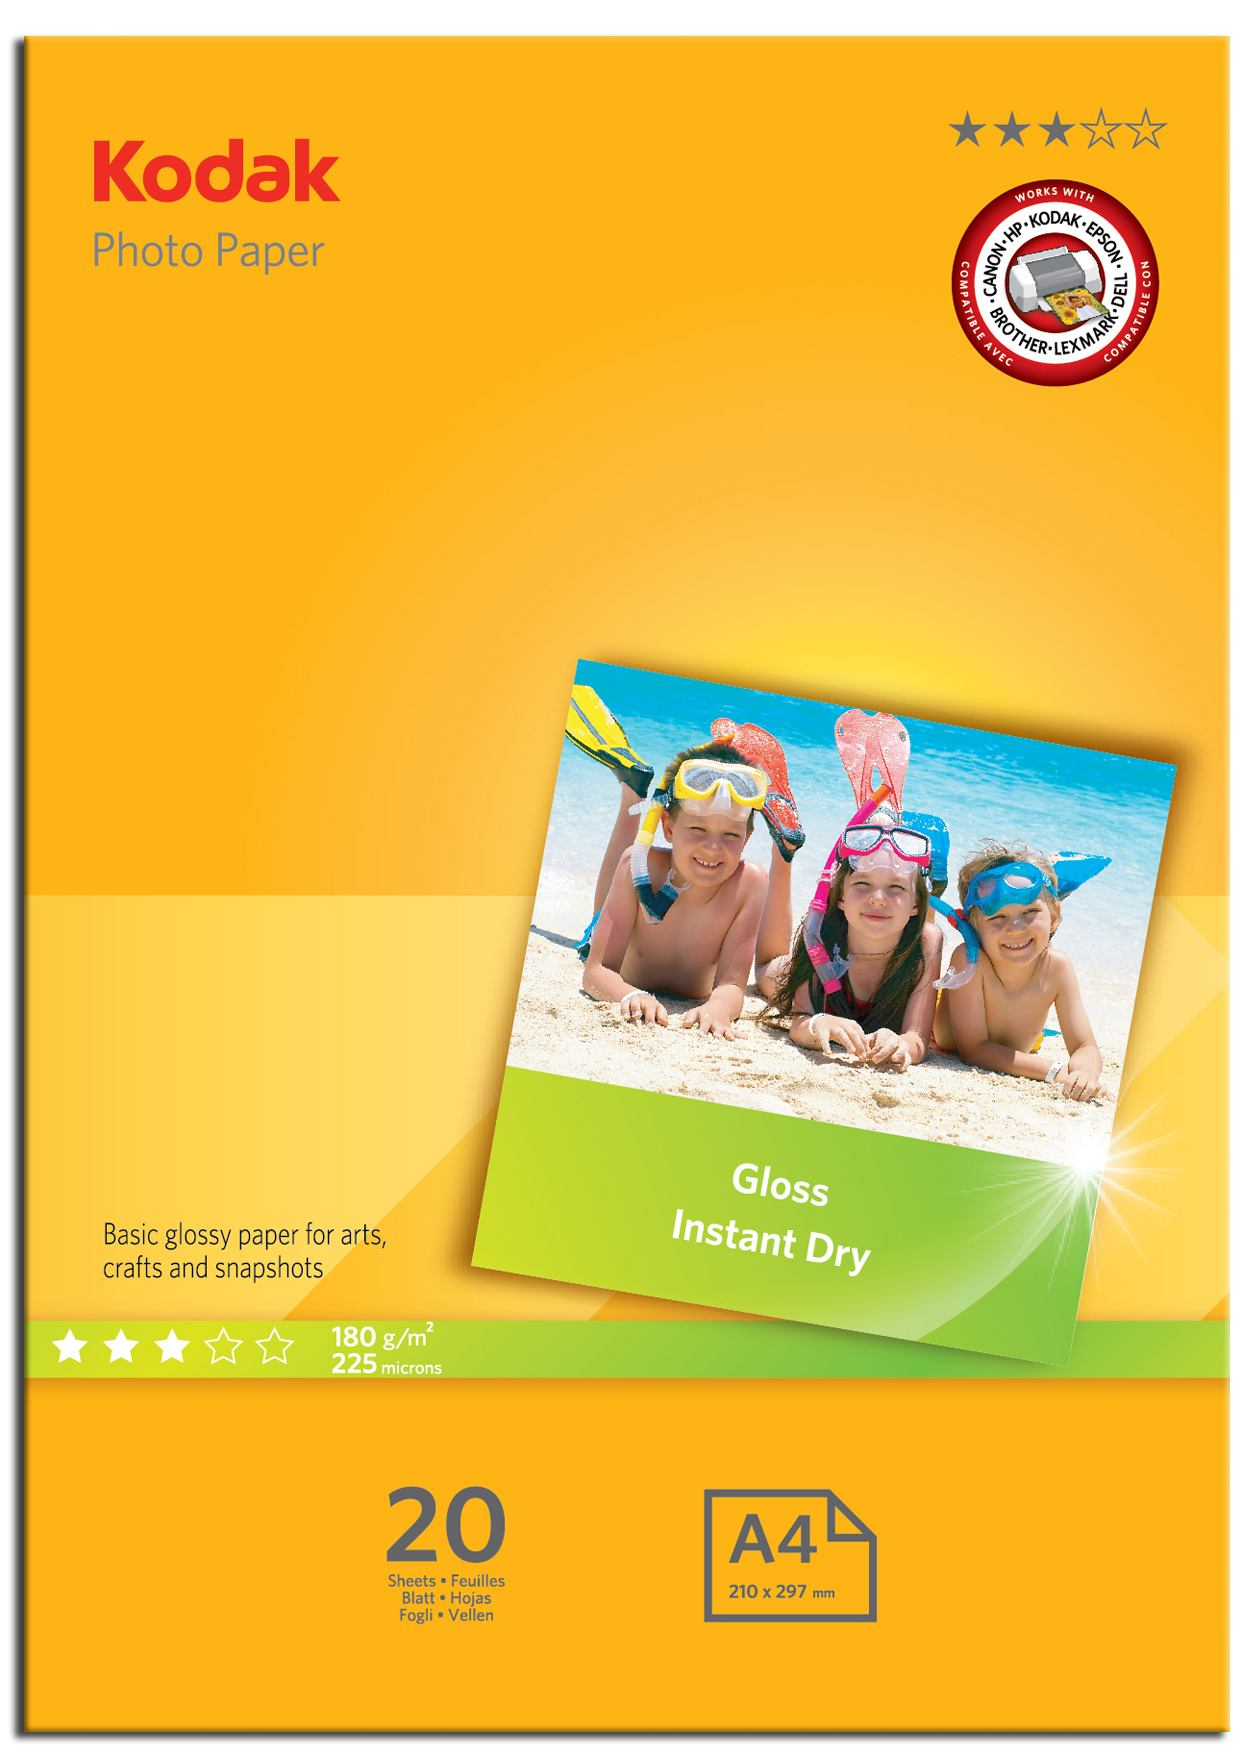 Photo Paper Kodak 5740512 A4 Gloss Photo Paper 20 Sheets